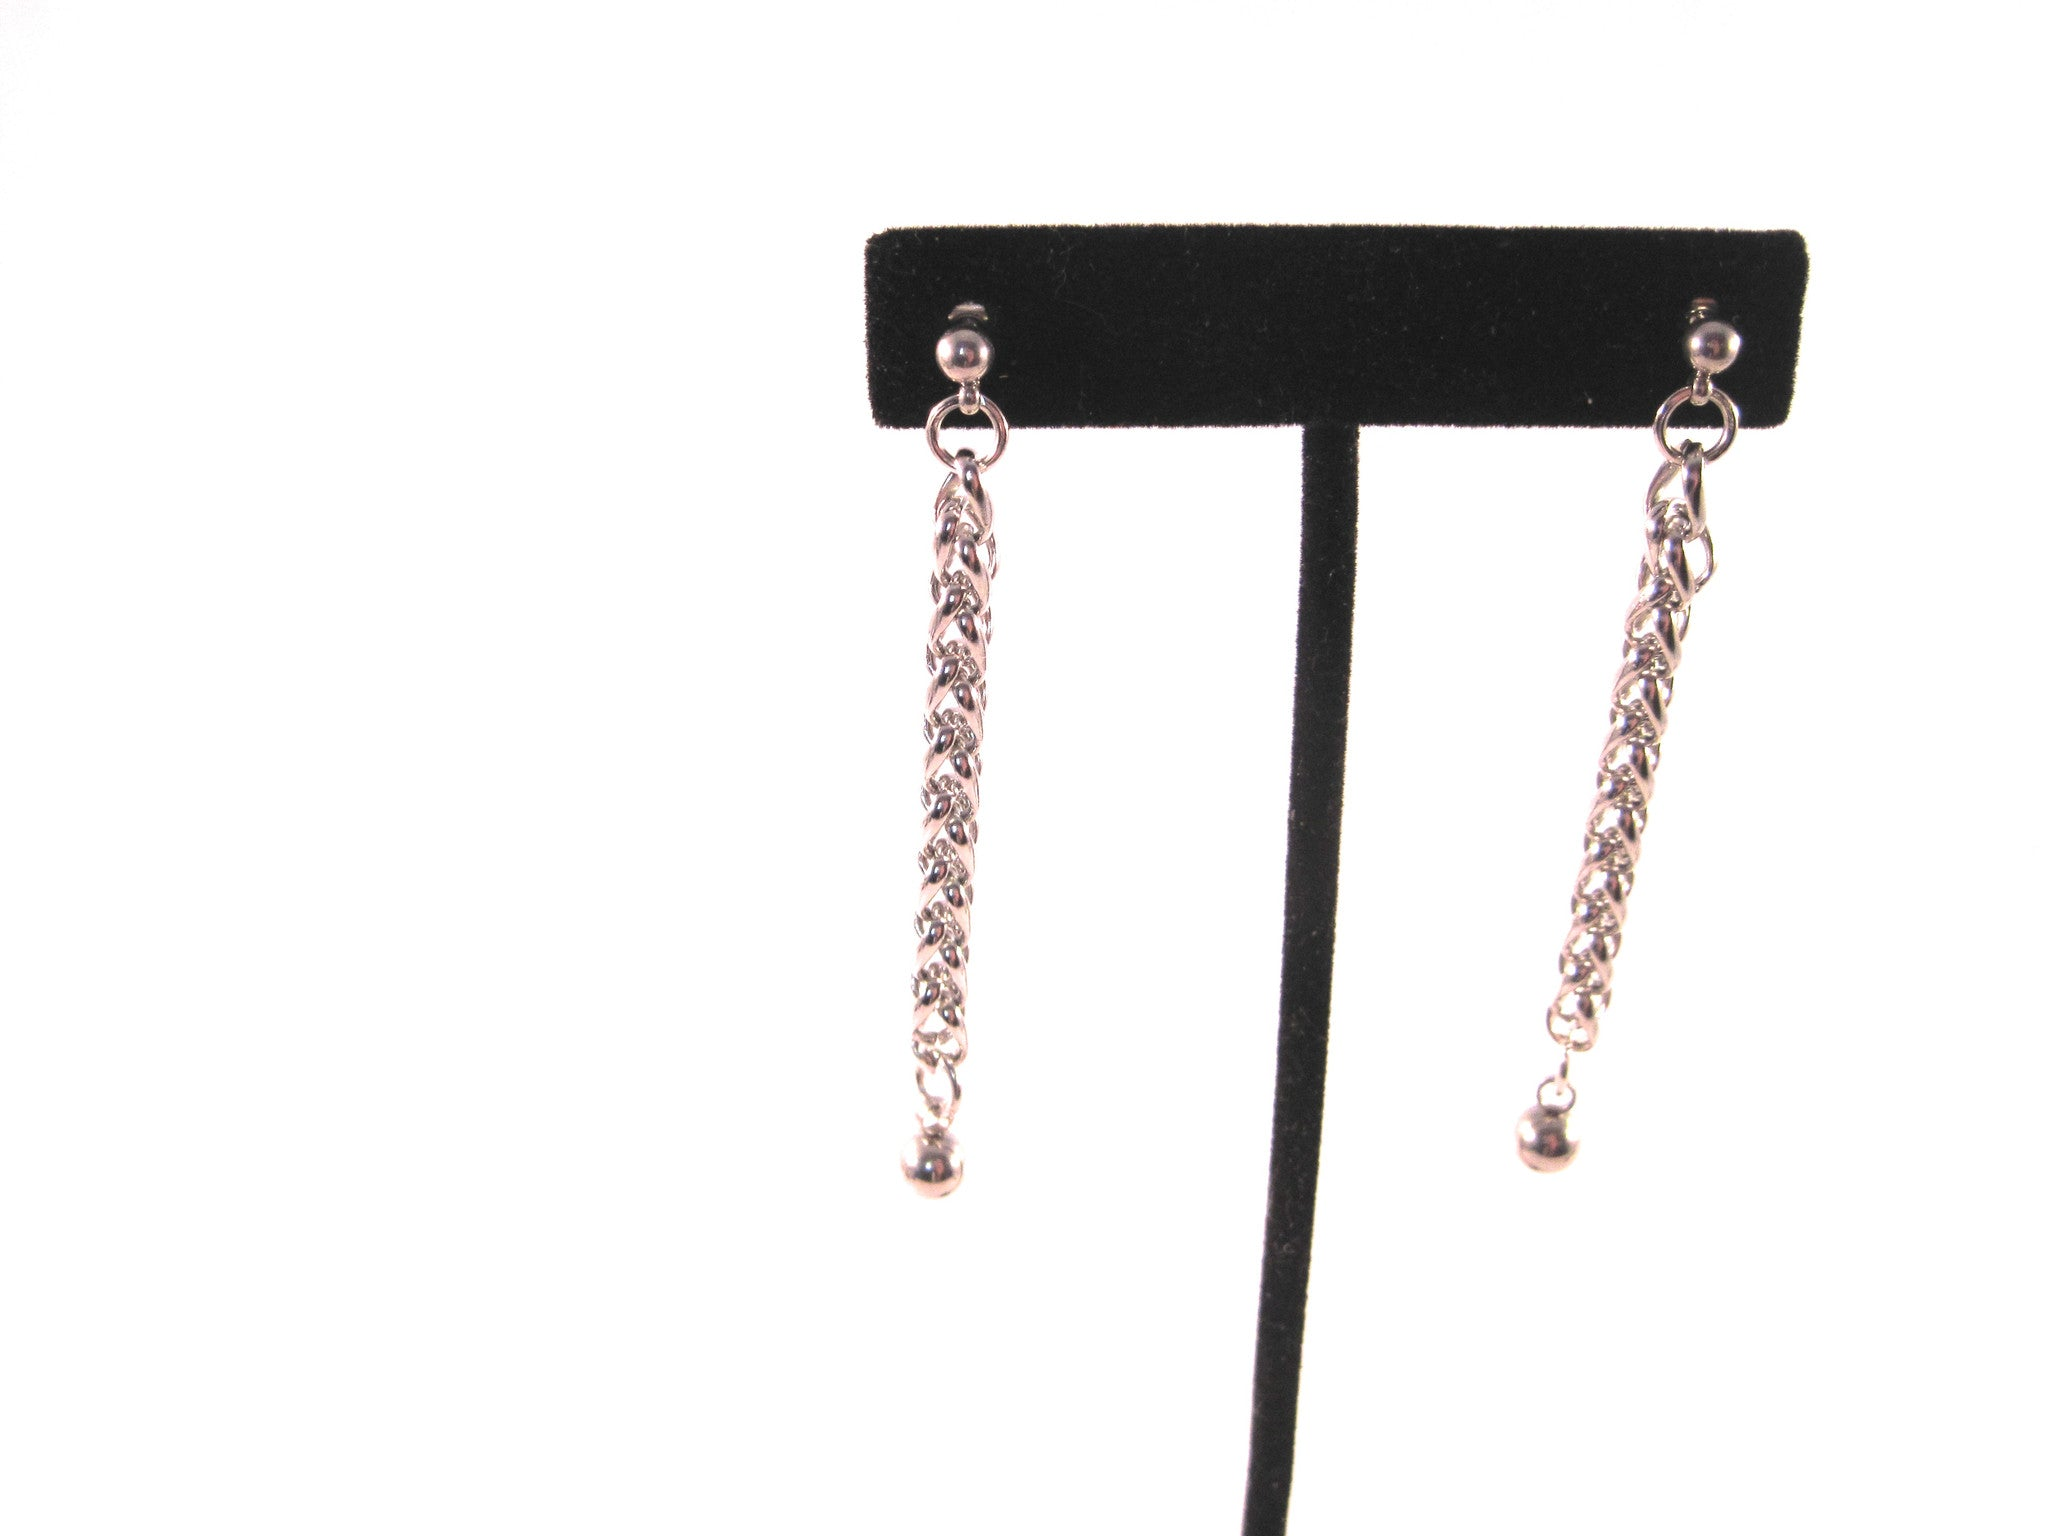 JUMP RINGS AND CHAINS EARRINGS BY NYET JEWELRY.